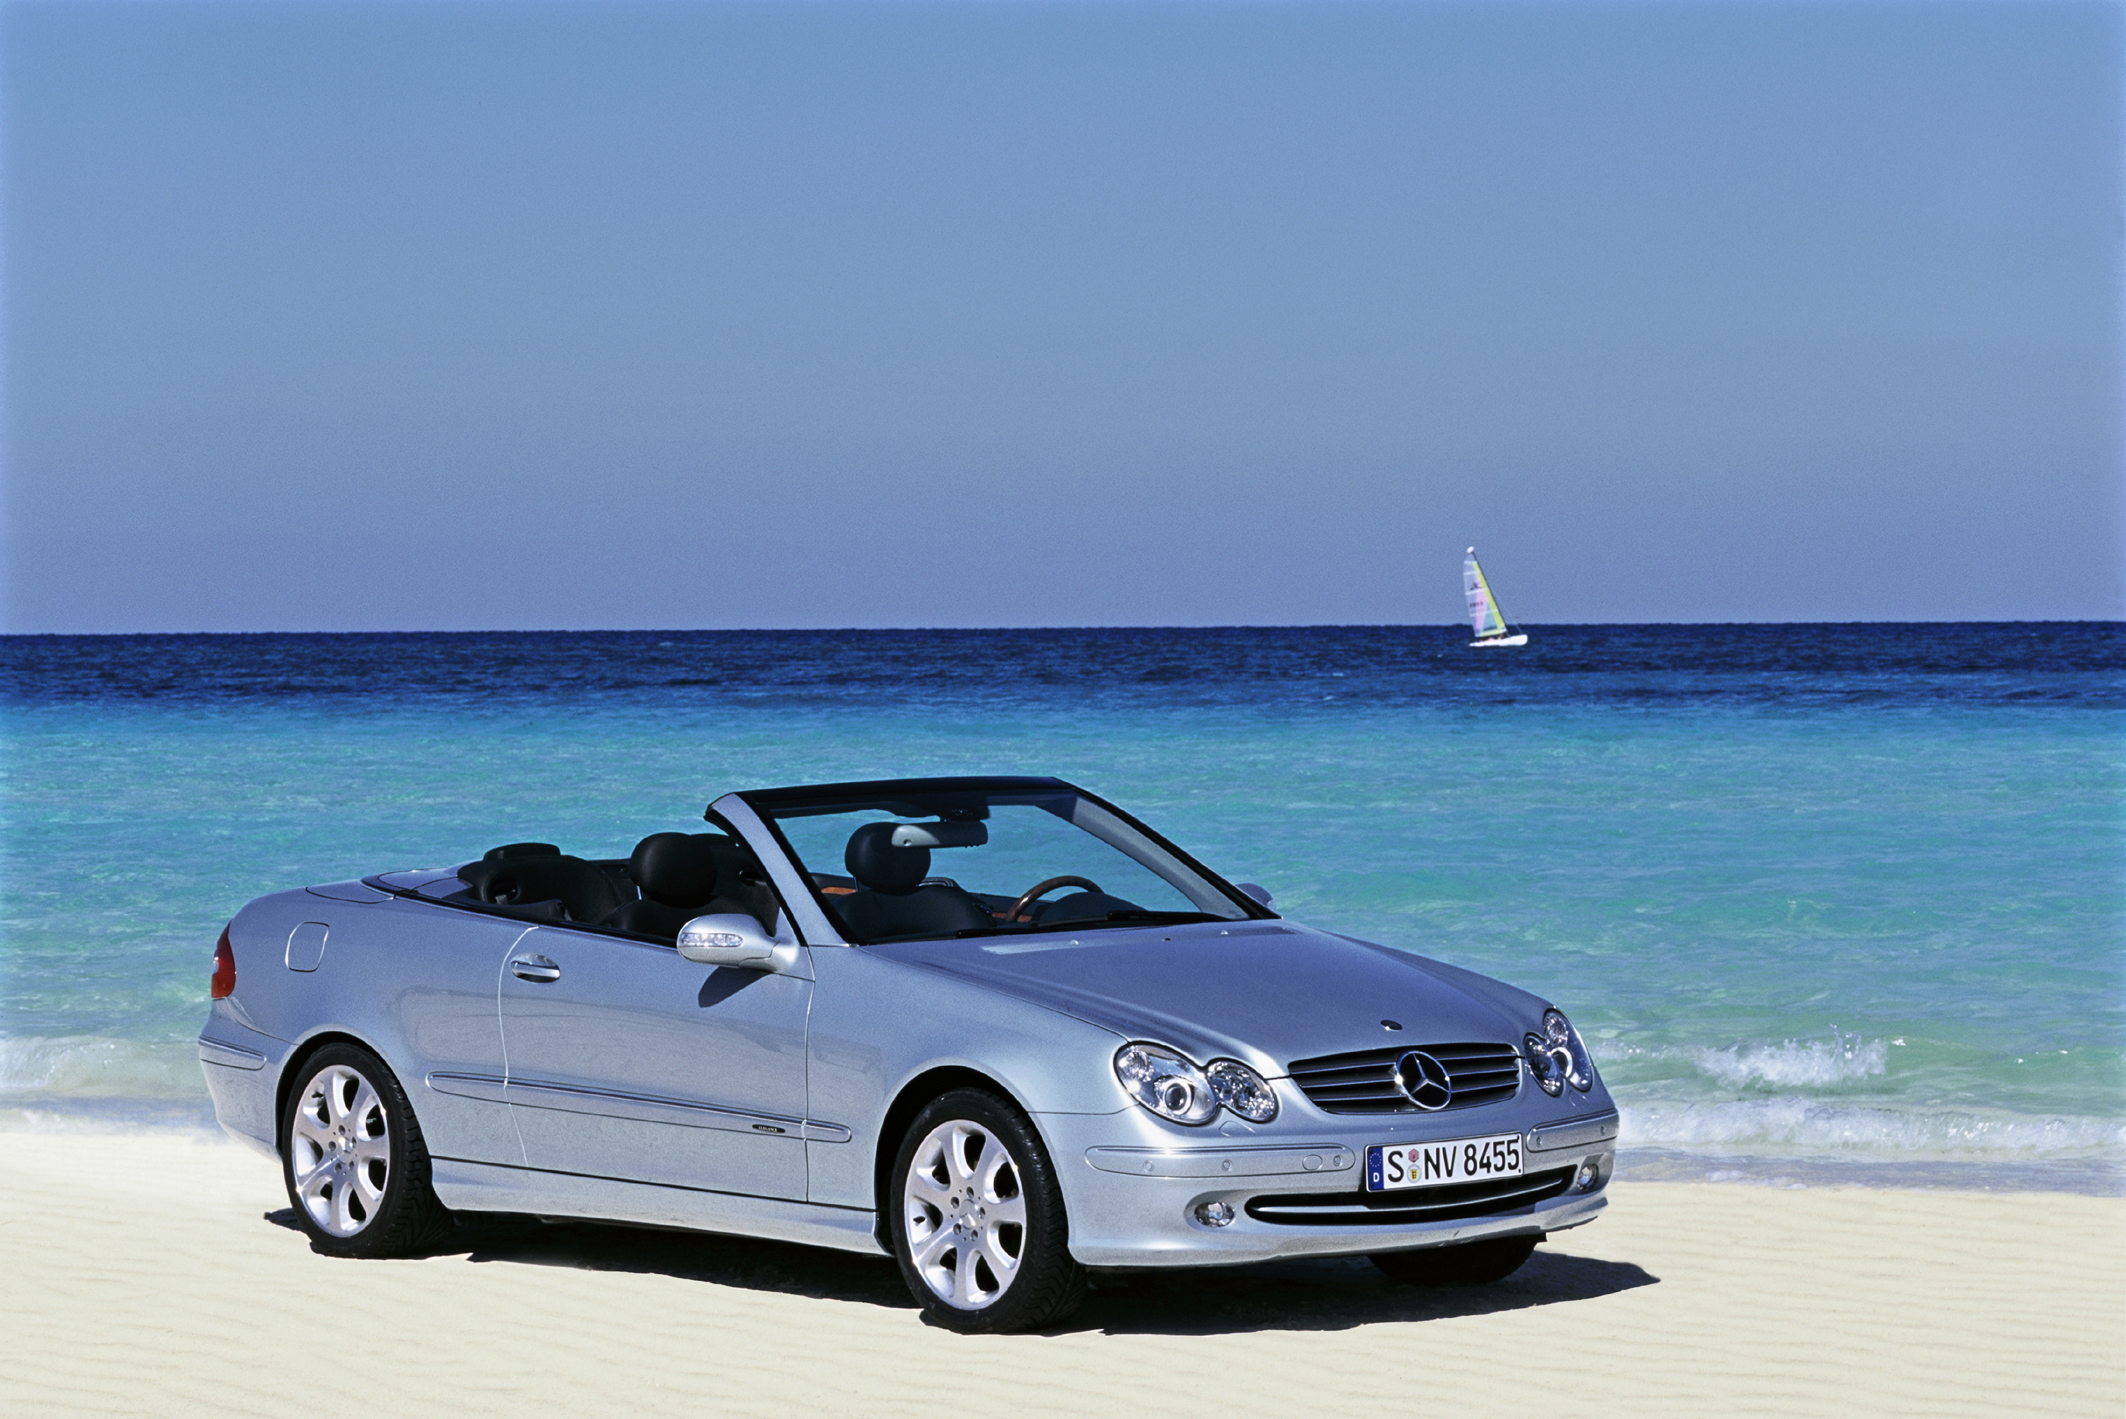 Mercedes-benz cabriolet photo - 1